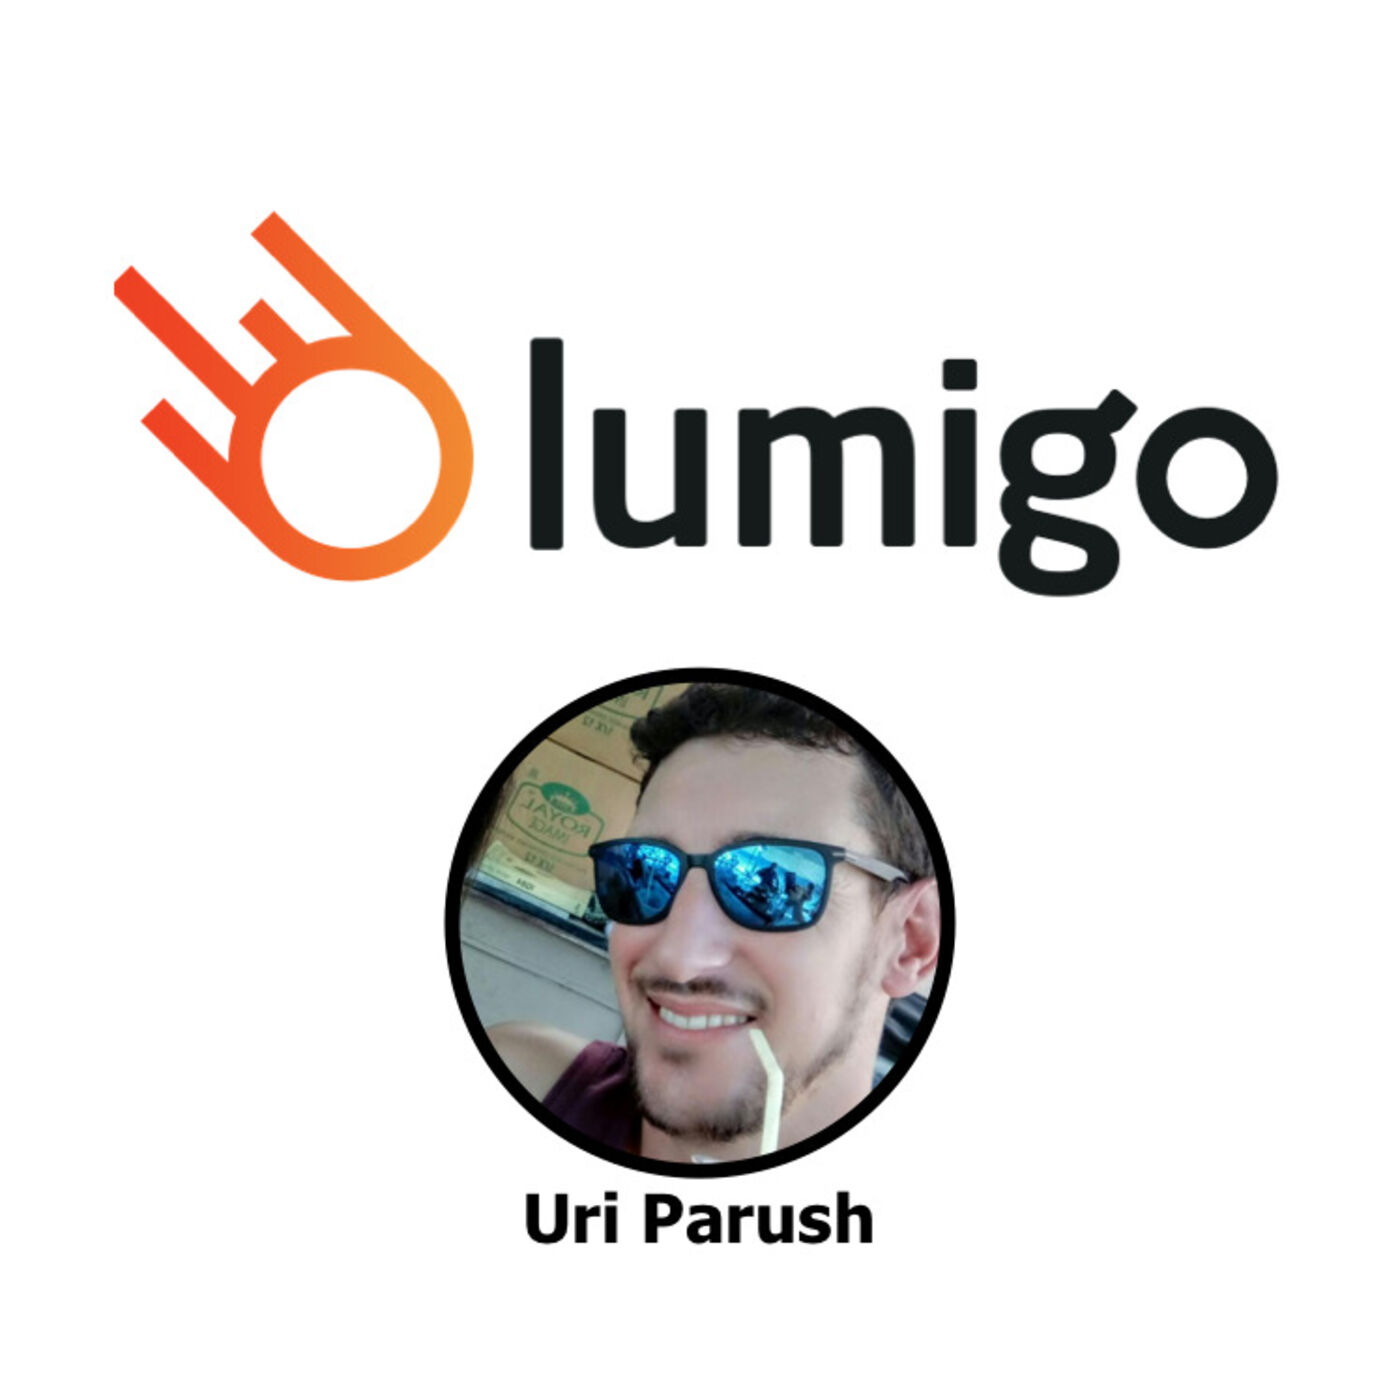 #19: Serverless observability with Lumigo and Uri Parush